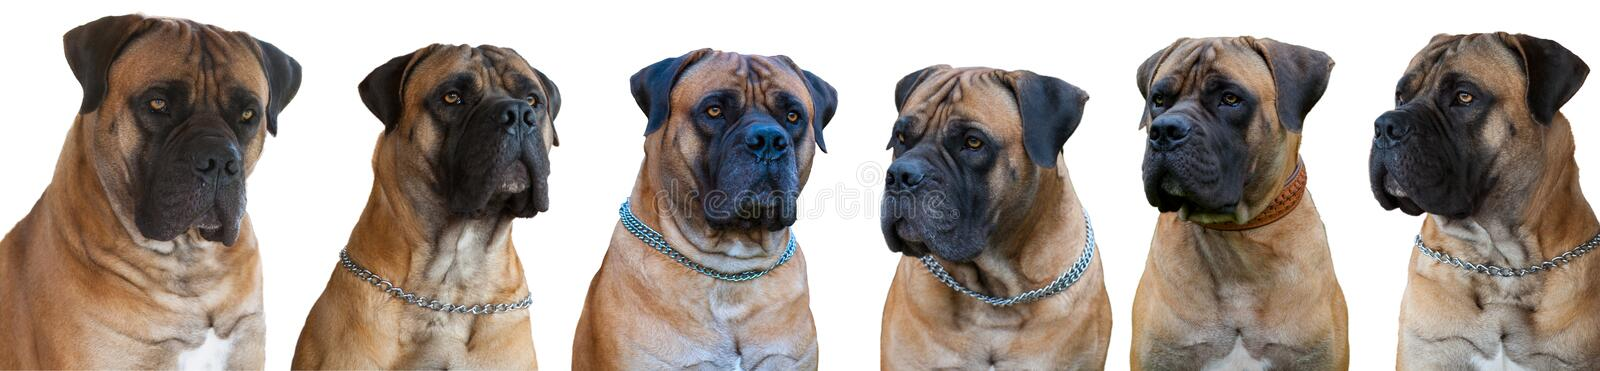 A rare breed of dog - the Boerboel South African Mastiff. Six red dogs  on white background, isolated, close up. A rare breed of dog - the Boerboel South African royalty free stock photo